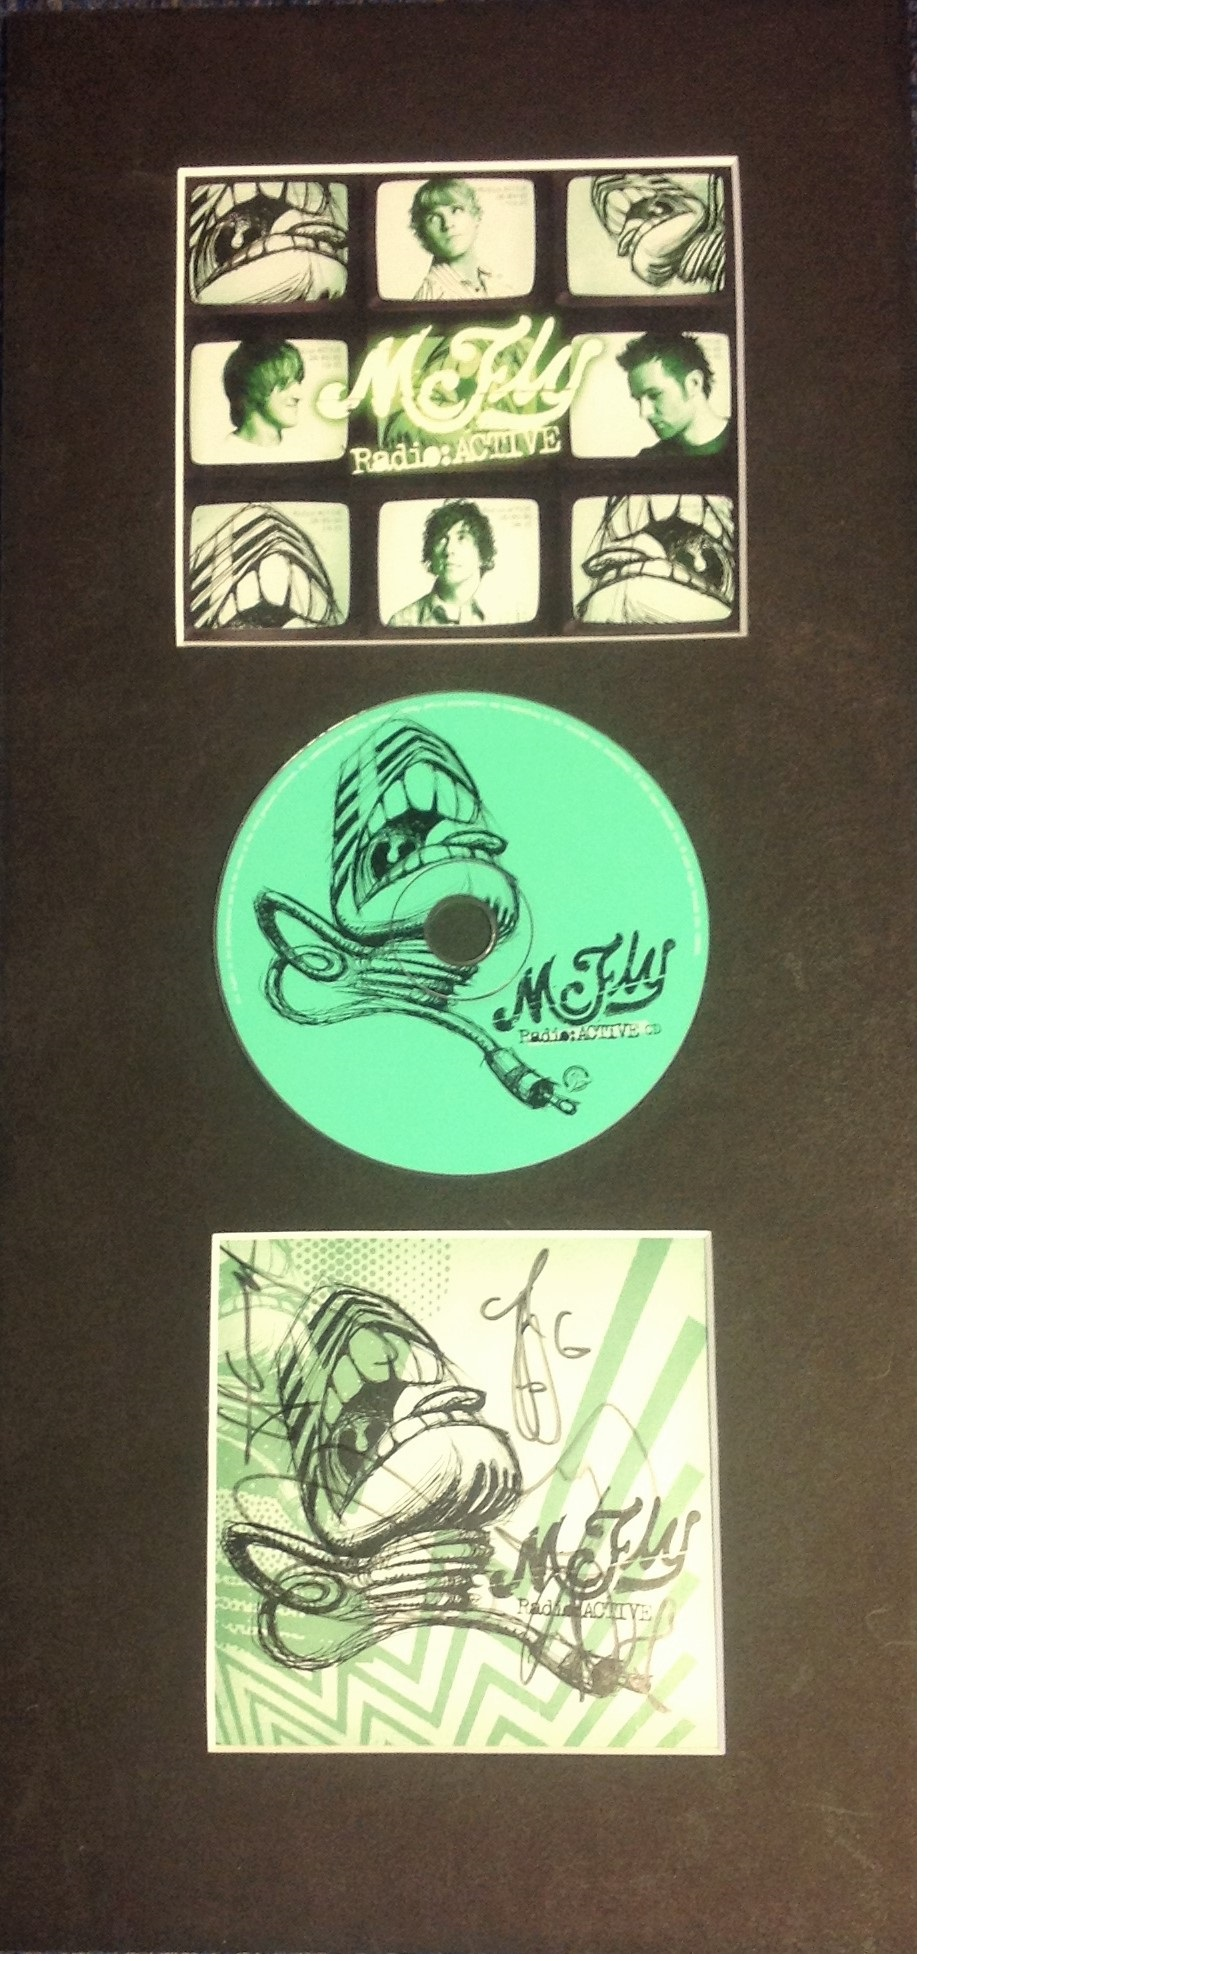 Lot 42 - McFly 19x9 overall signature piece includes Radio Active promo, Radioactive CD and a CD sleeve